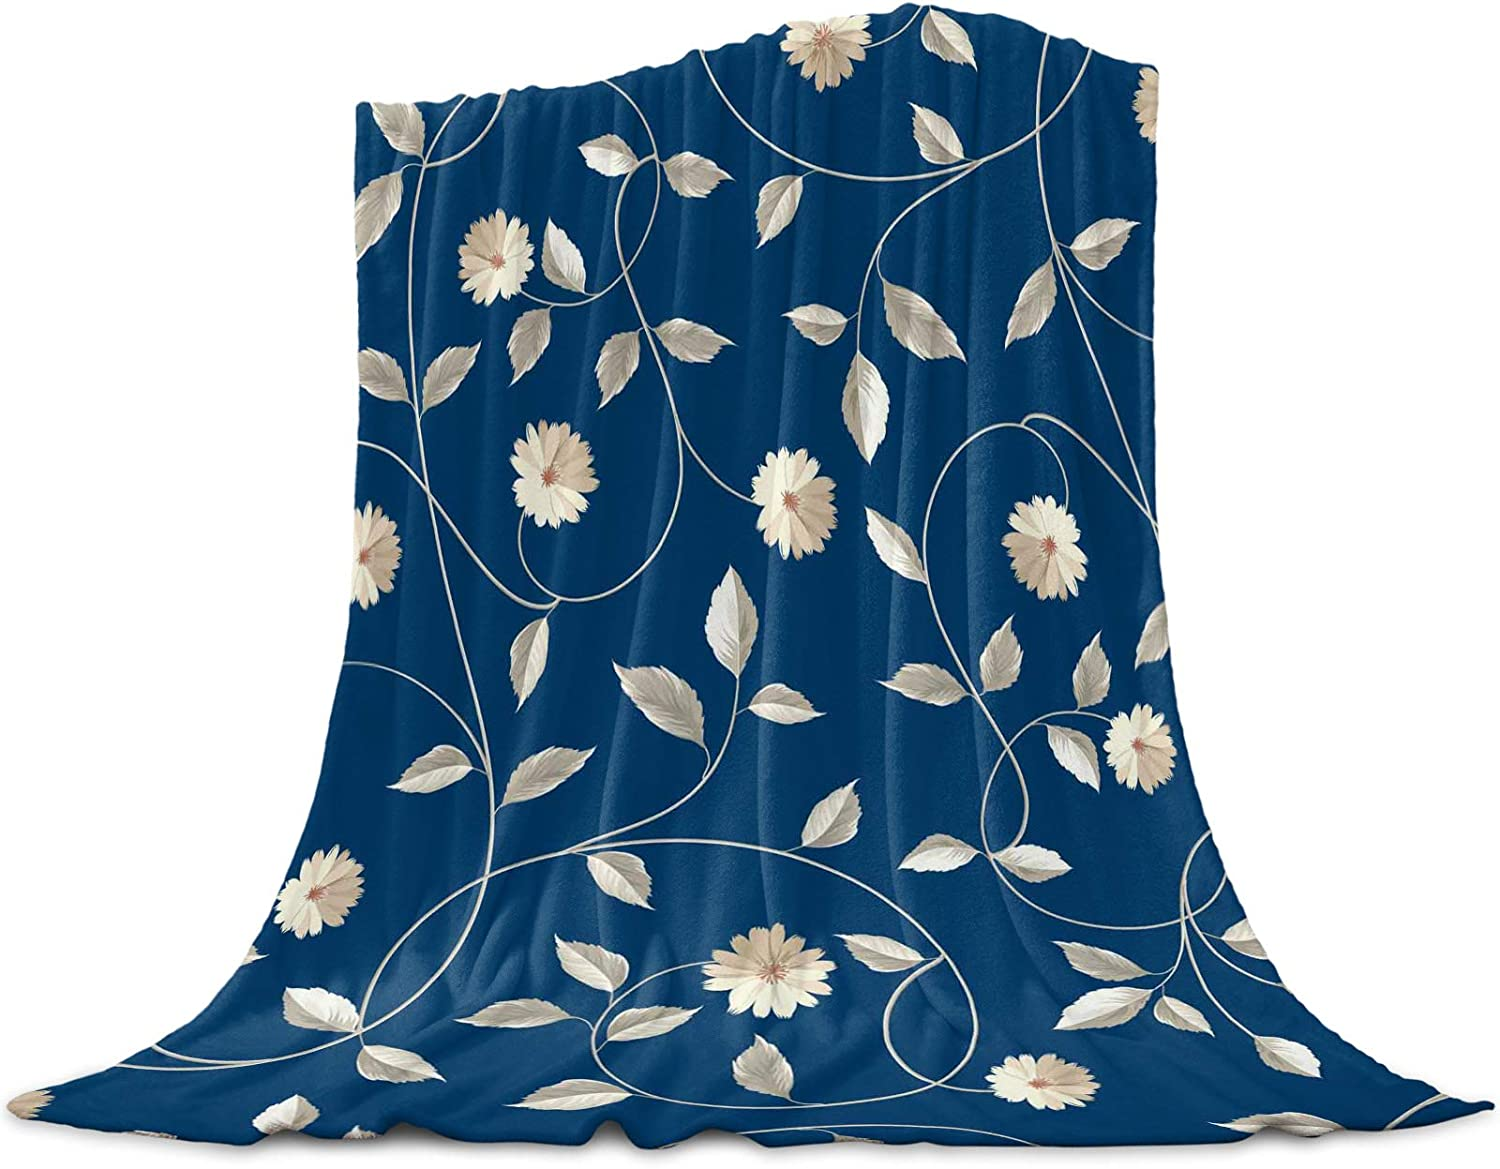 Soft Warmer Throw Blankets for Max 41% OFF All Flower and Vine ...